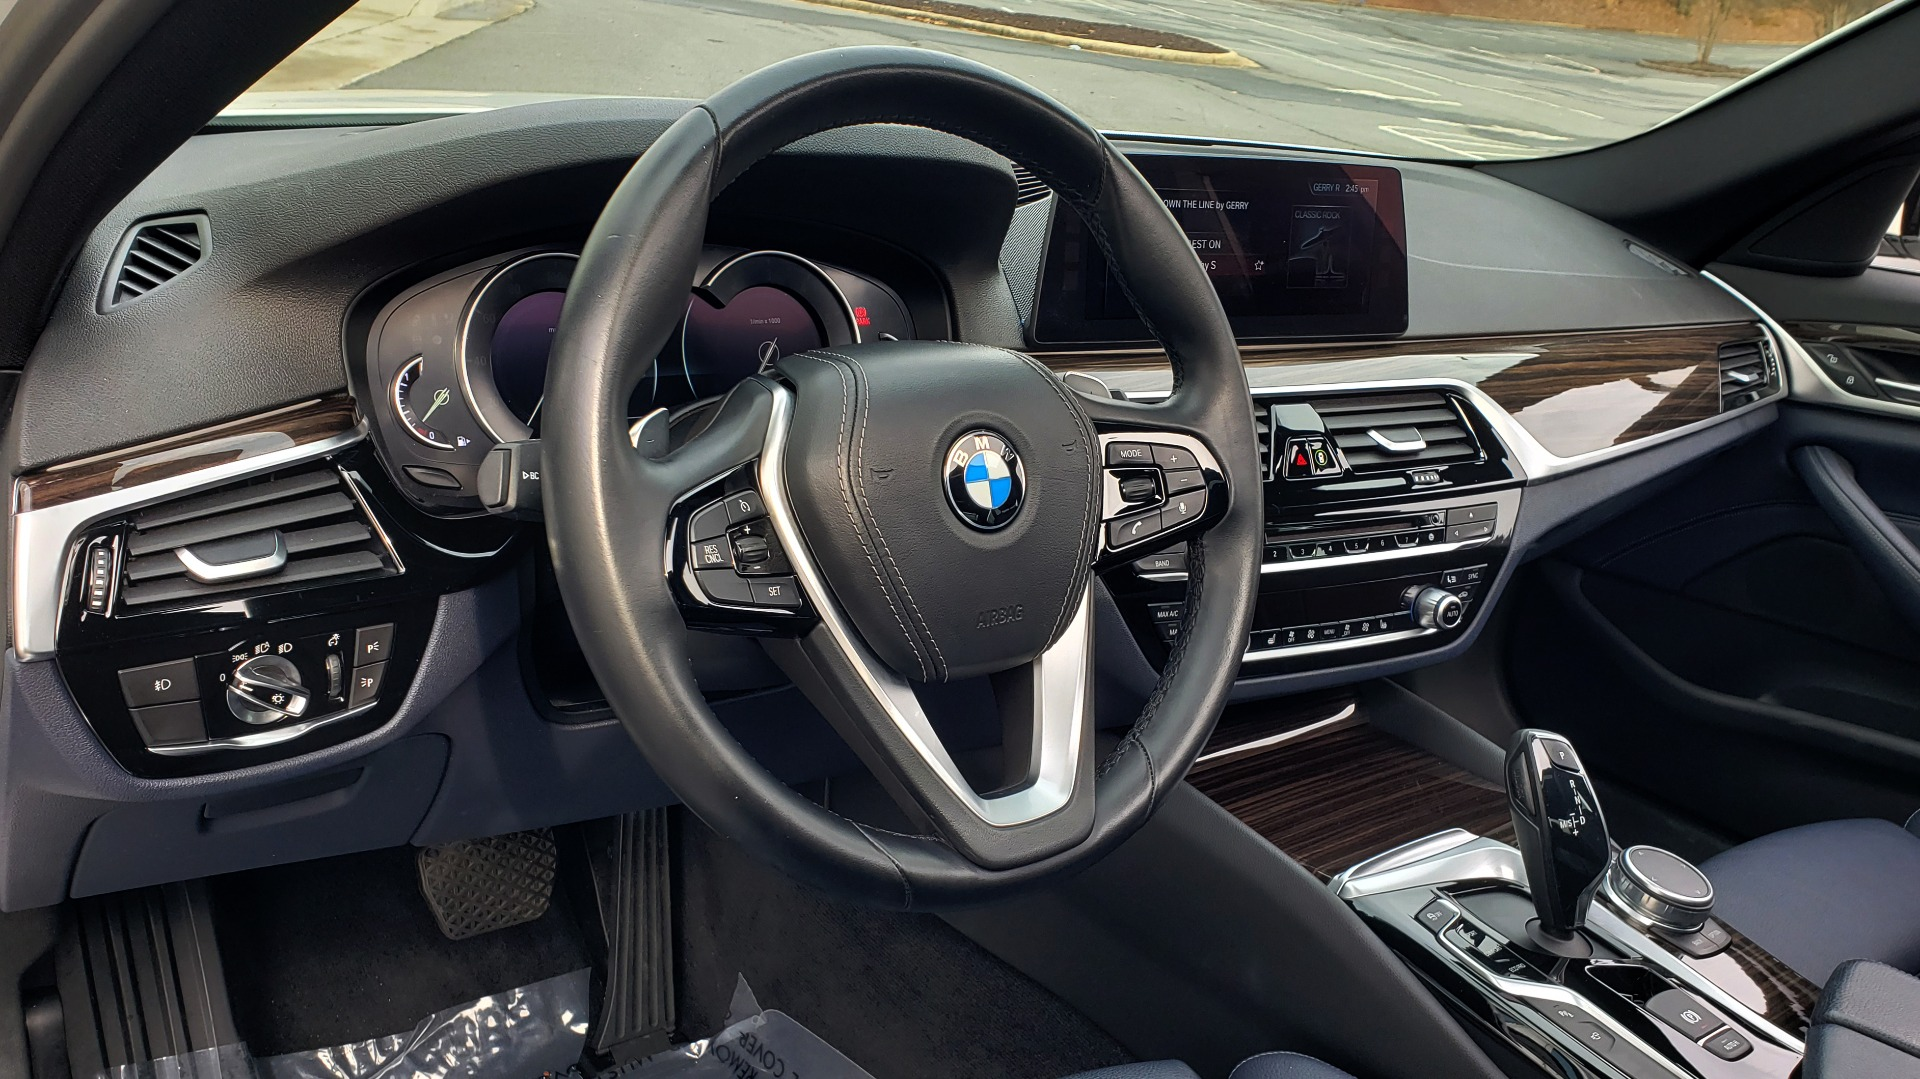 Used 2017 BMW 5 SERIES 530I PREMIUM / DRVR ASST PLUS / NAV / HUD / SUNROOF / REARVIEW for sale Sold at Formula Imports in Charlotte NC 28227 41